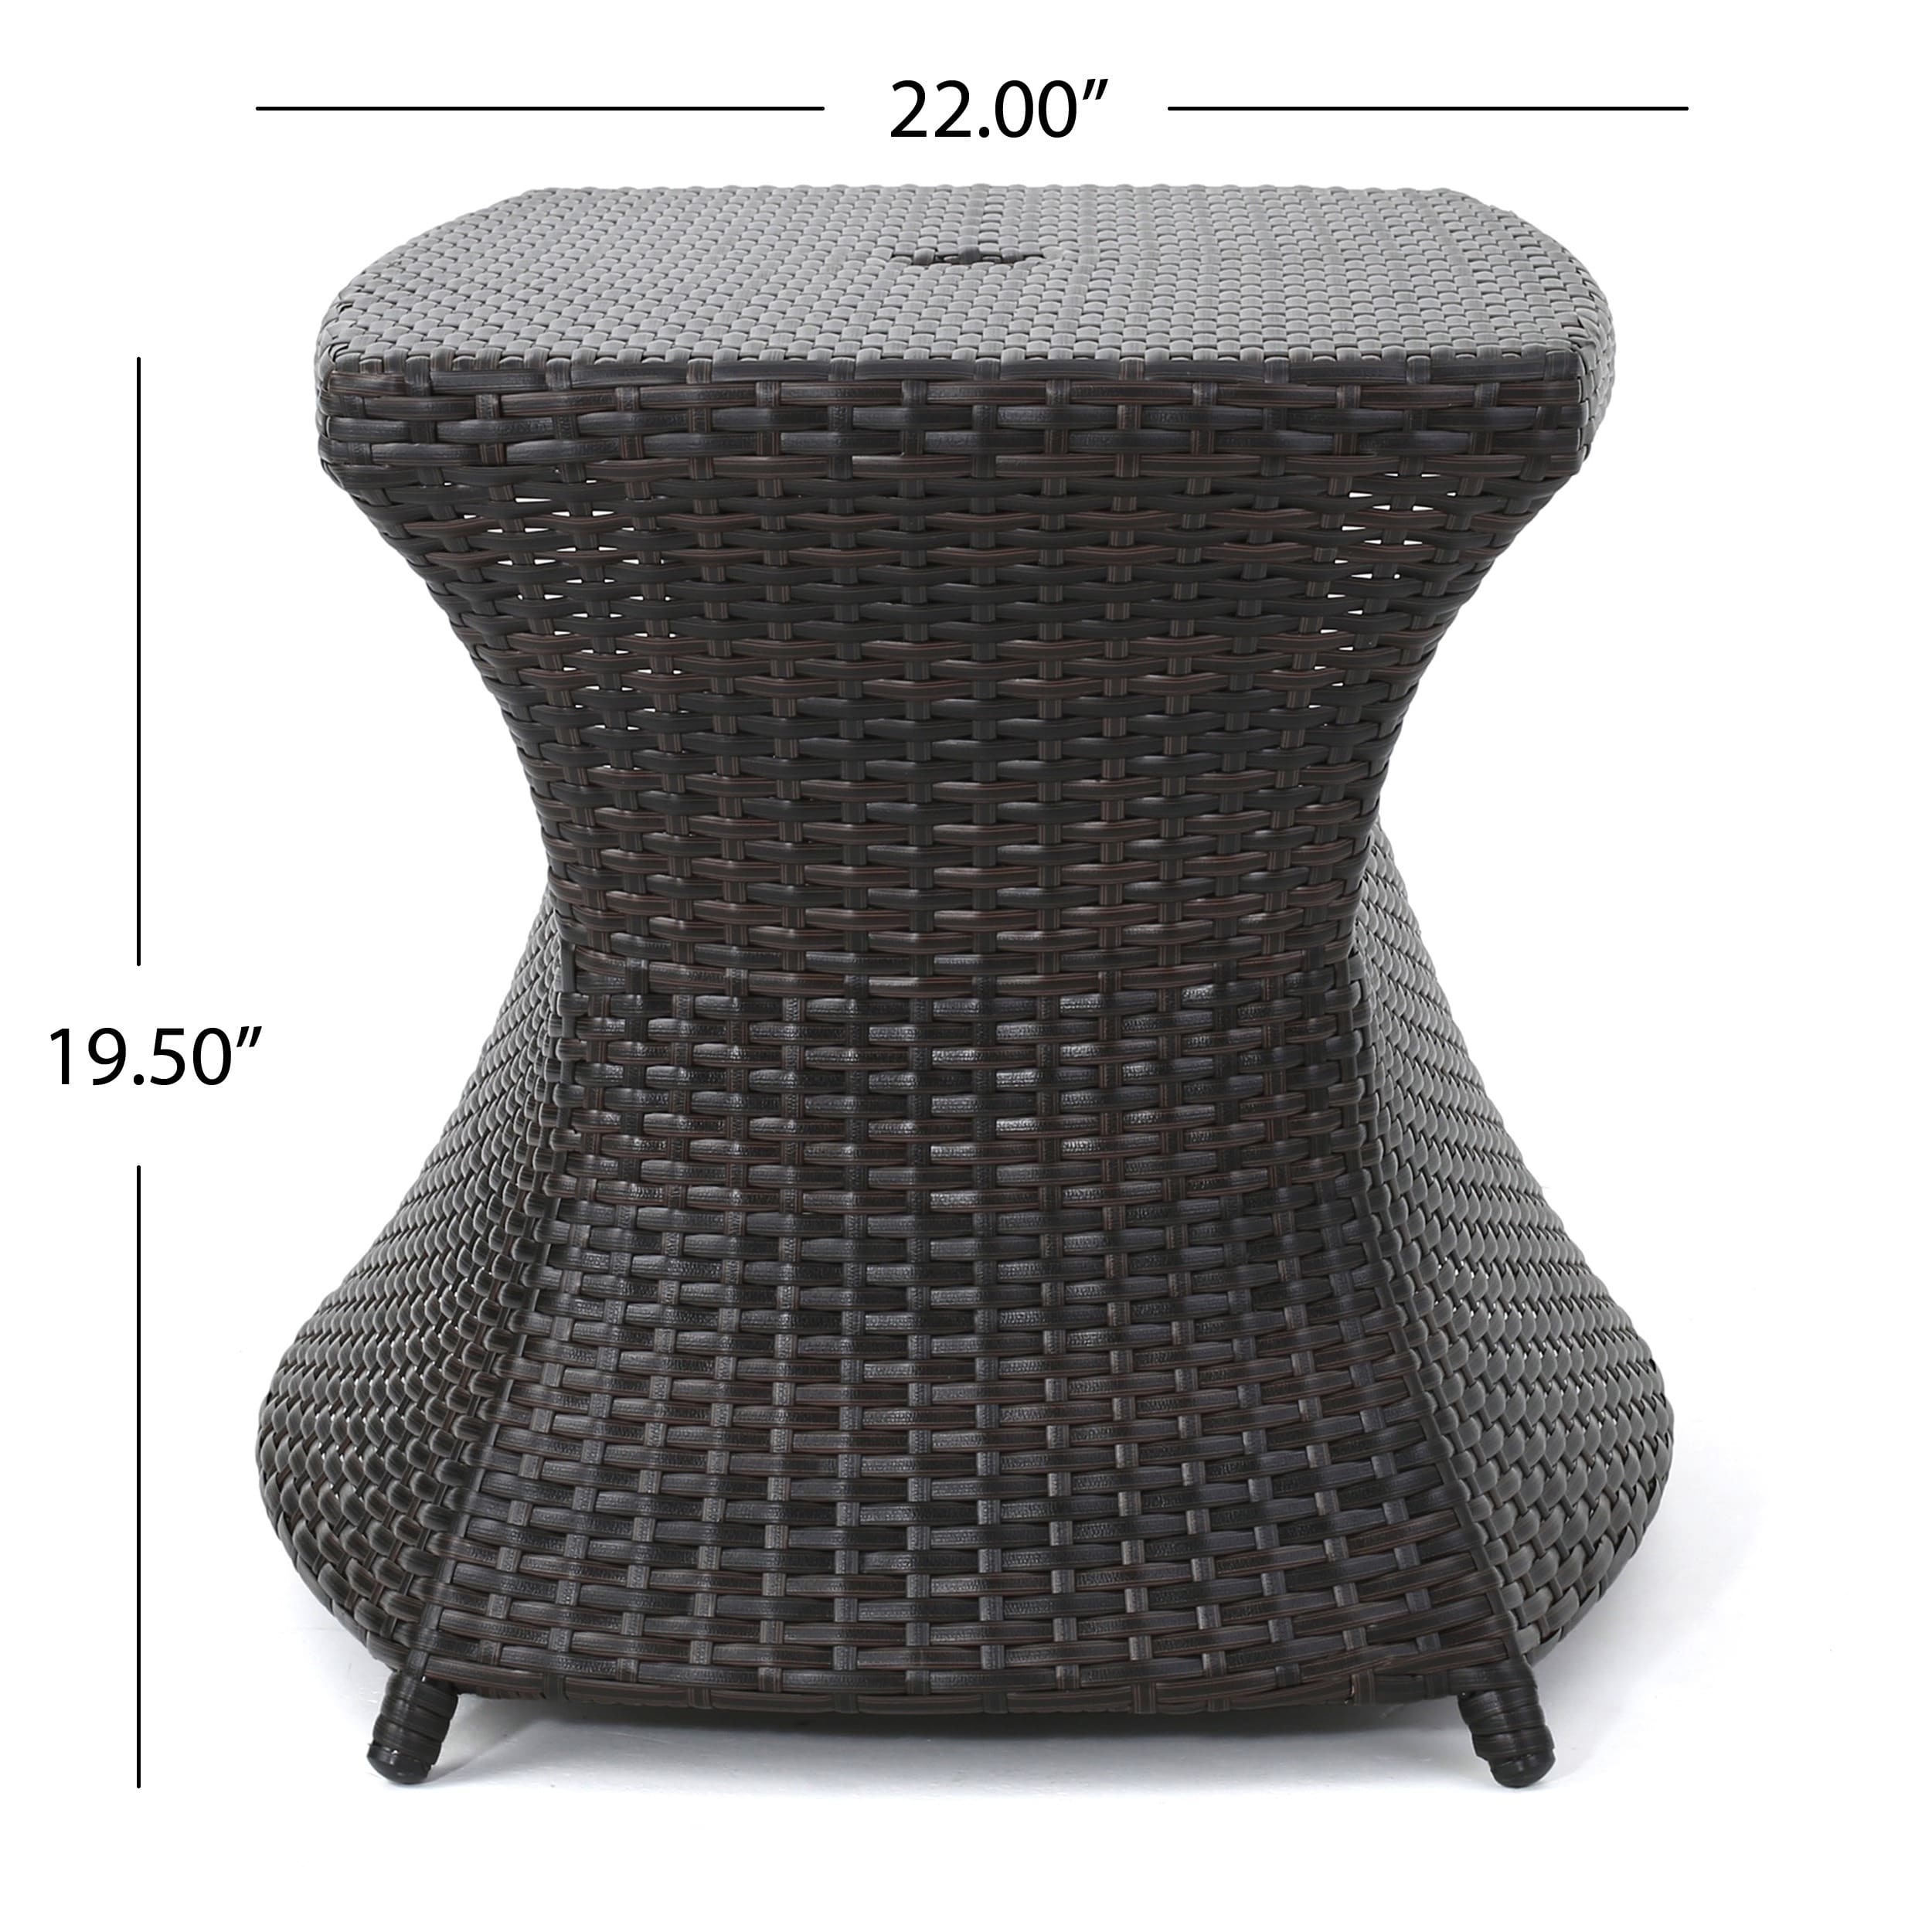 berkeley outdoor wicker side table with umbrella hole christopher knight home free shipping today tudor furniture quilt runner patterns coffee design ideas folding bistro gossip